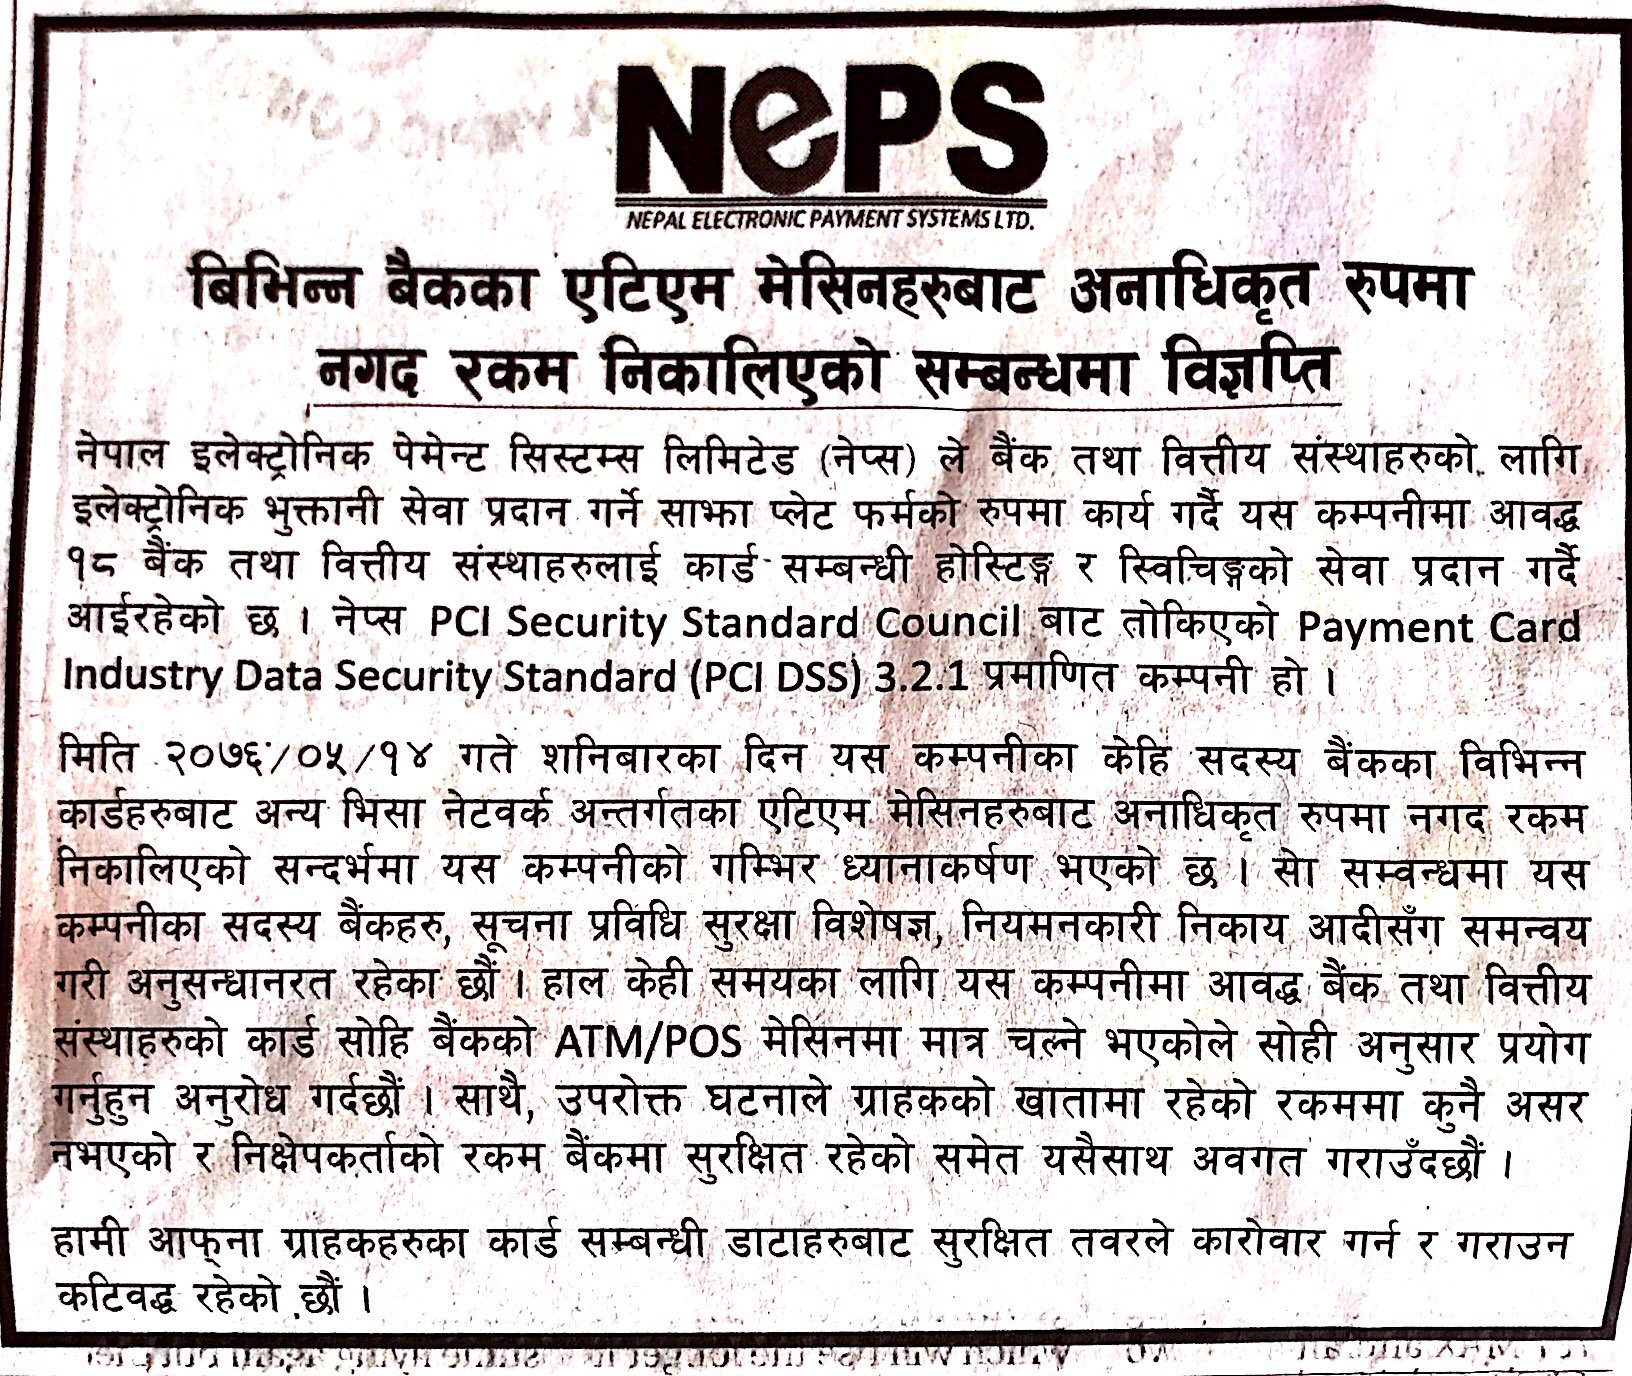 NEPS ABOUT ATM HACK IN NEPAL